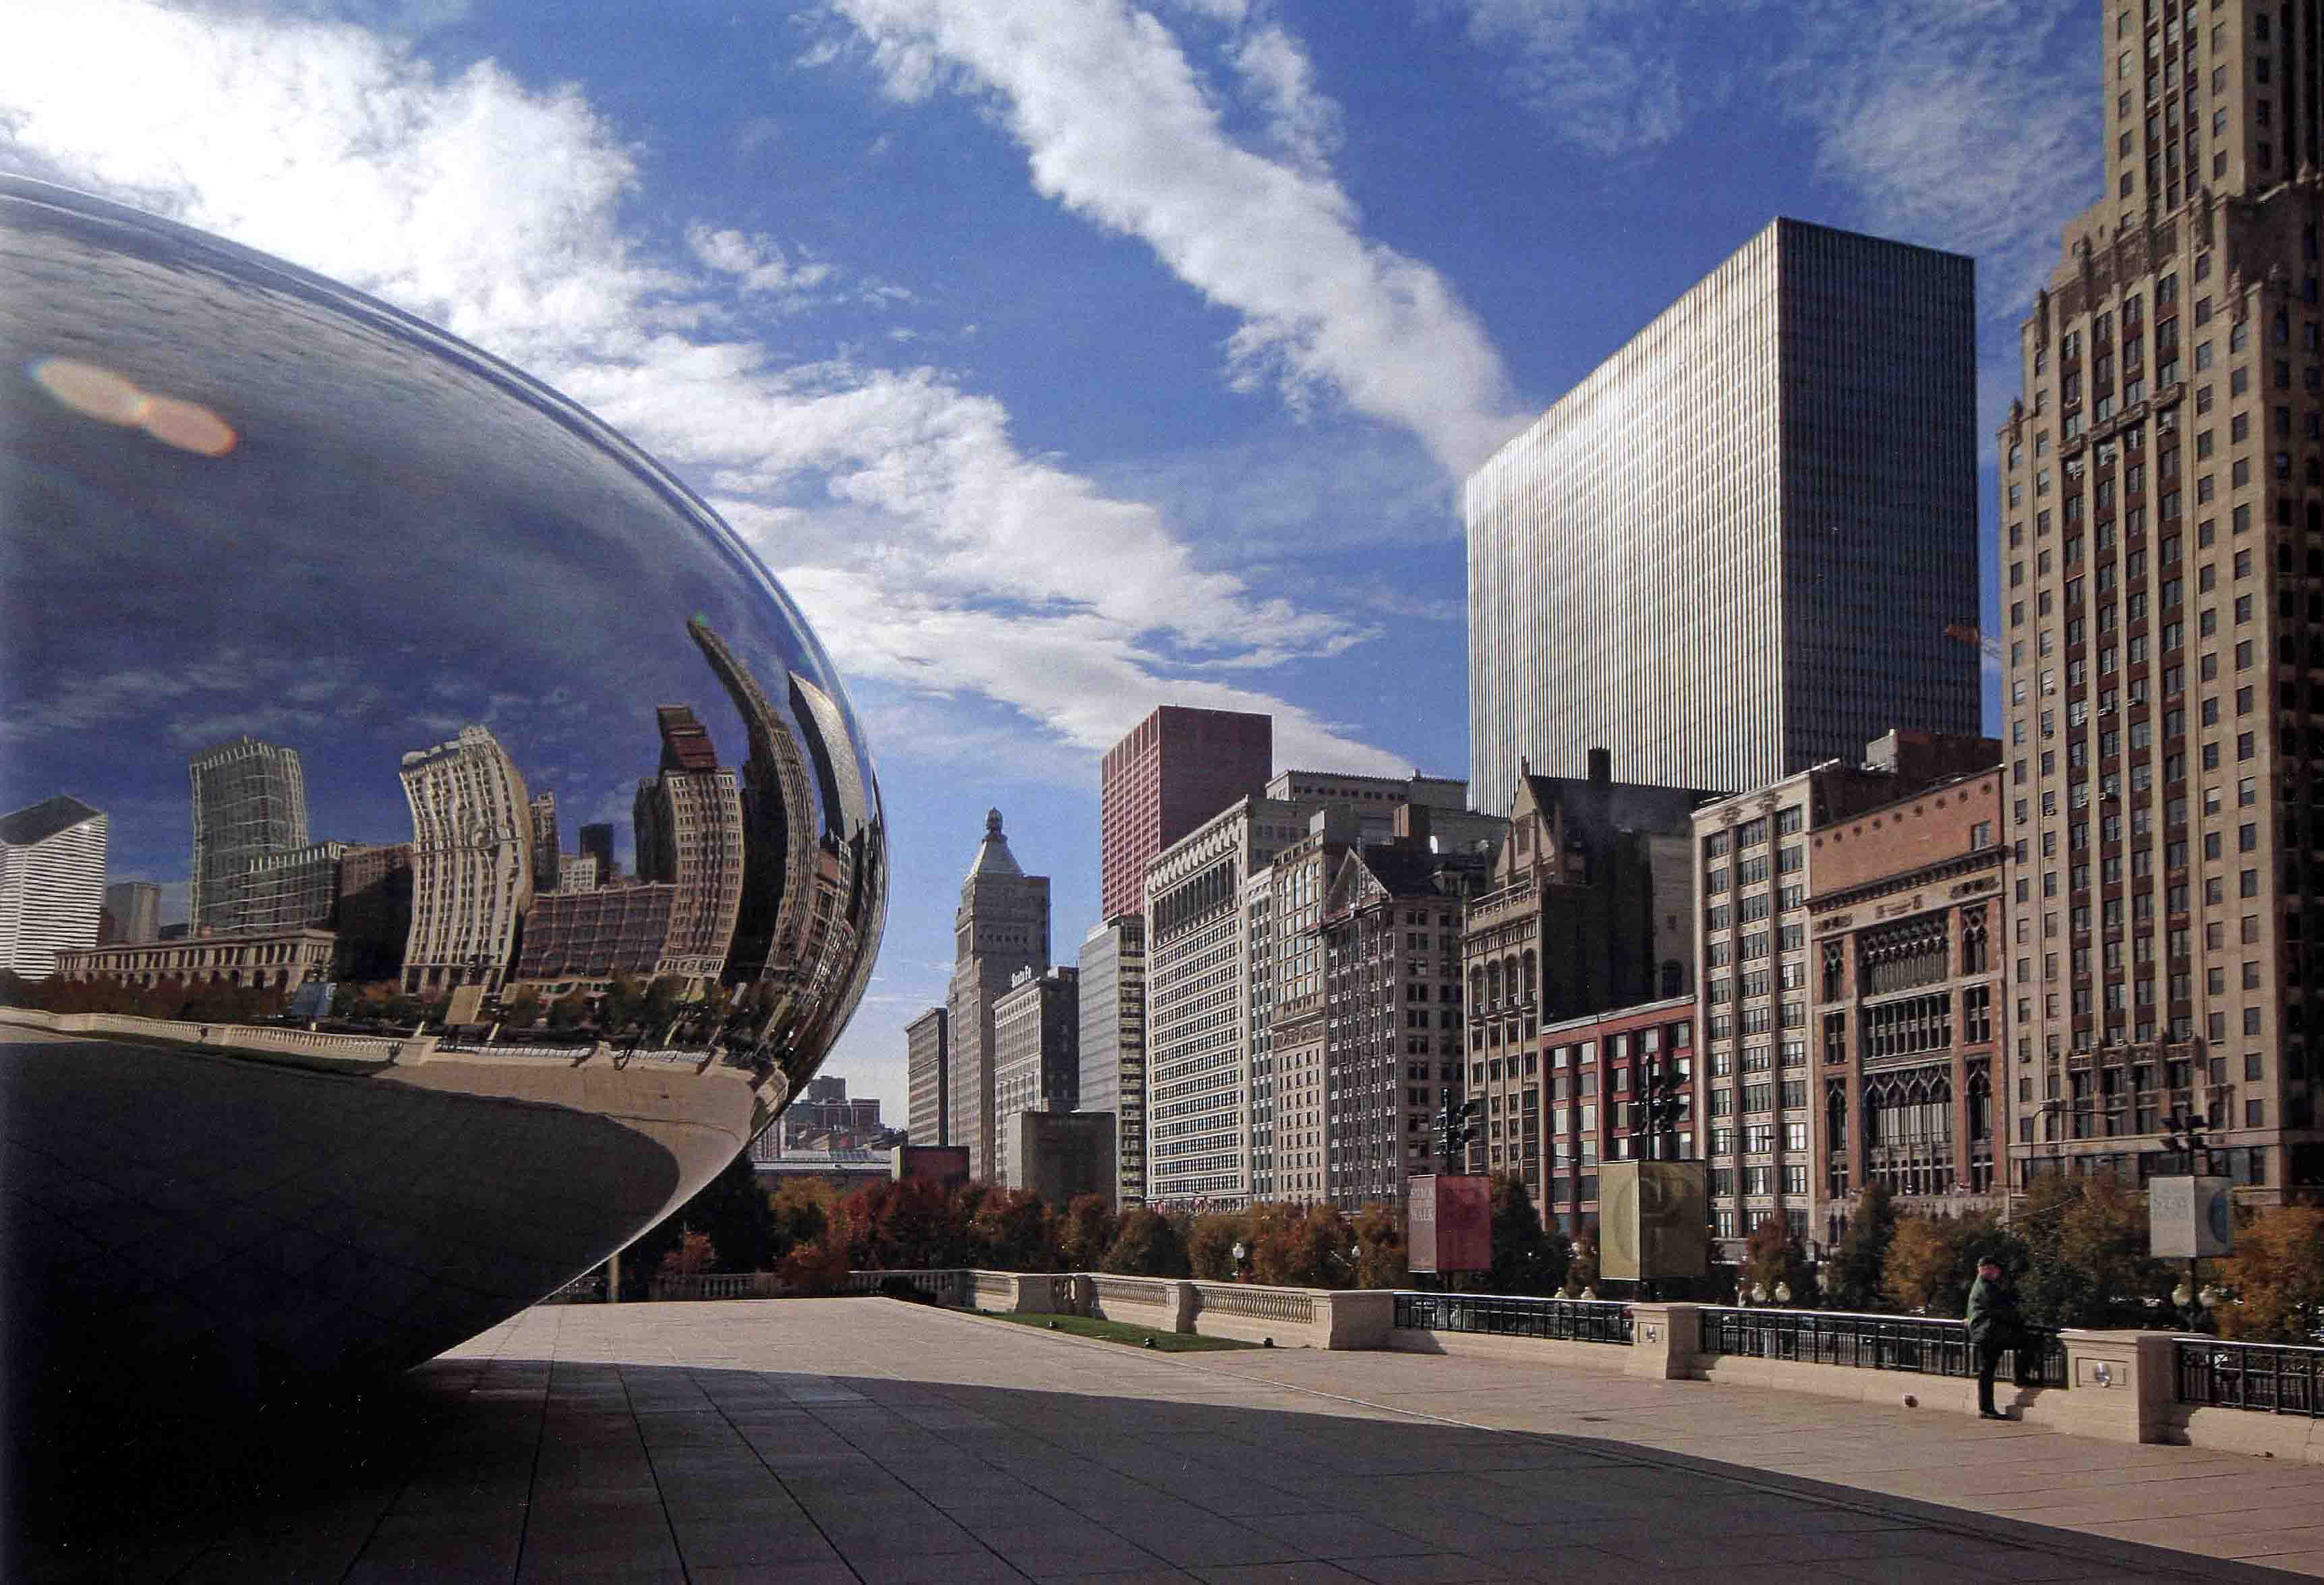 Things to Do in Chicago | Find Attractions, Museums & NightlifeOfficial Visitor Site · Create Your ItineraryTypes: Chicago Events, Tours & Attractions, Shopping, Dining, Sports & Recreation.